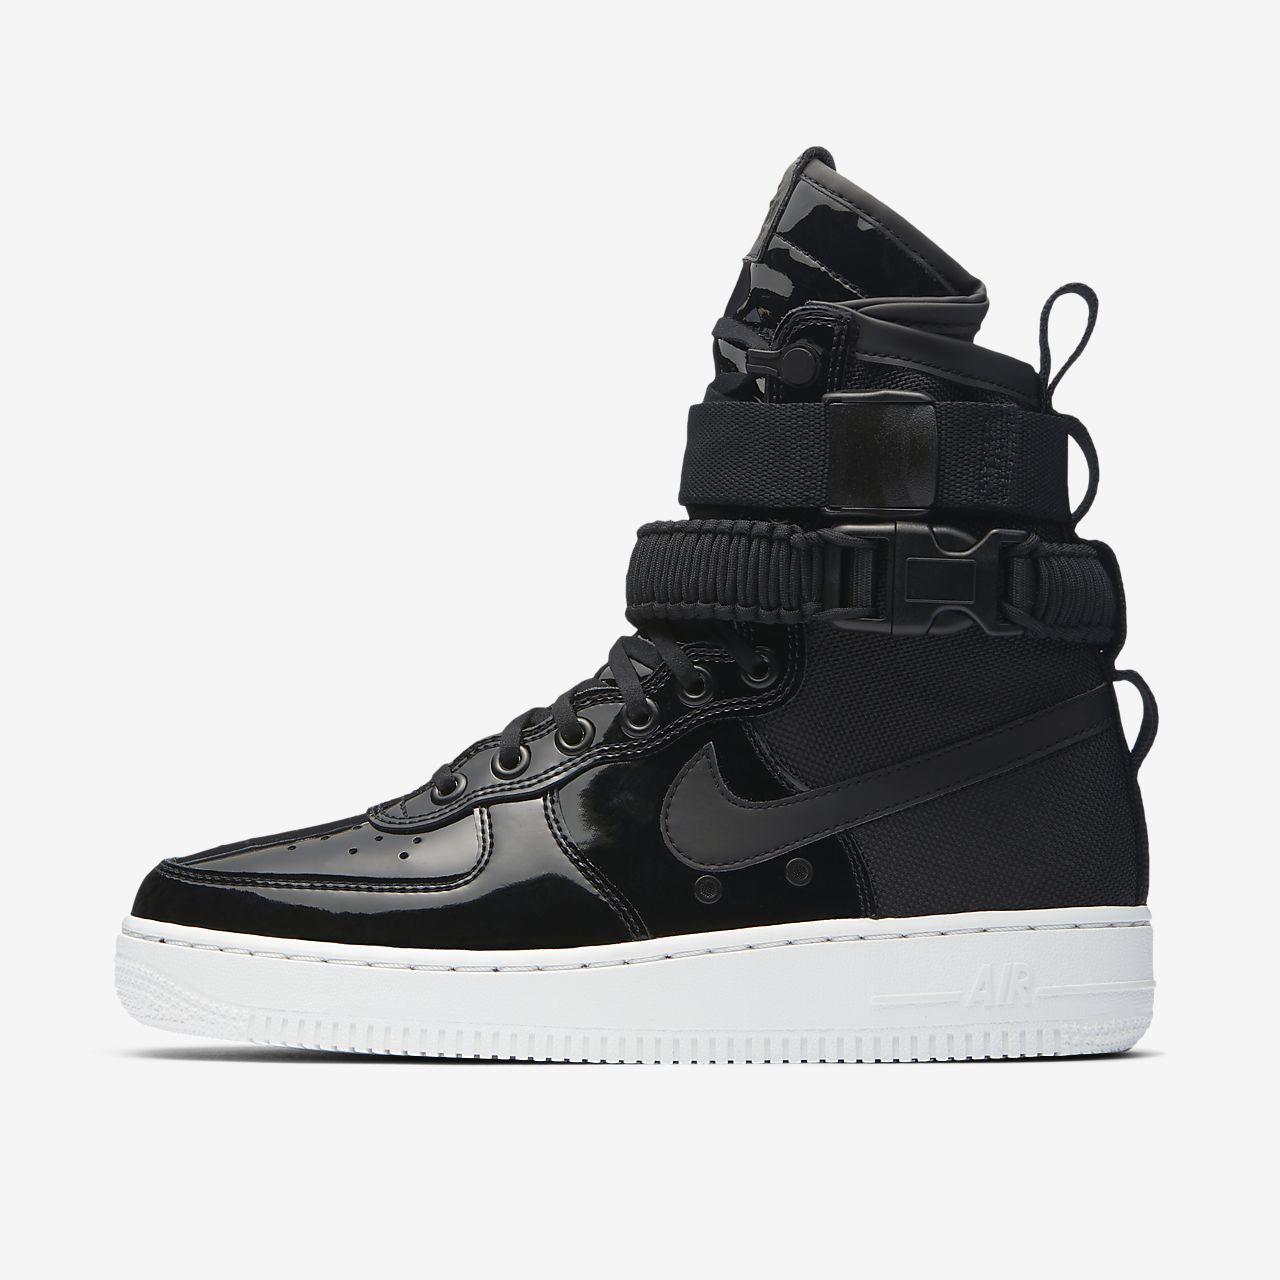 nike sf air force 1 high nz